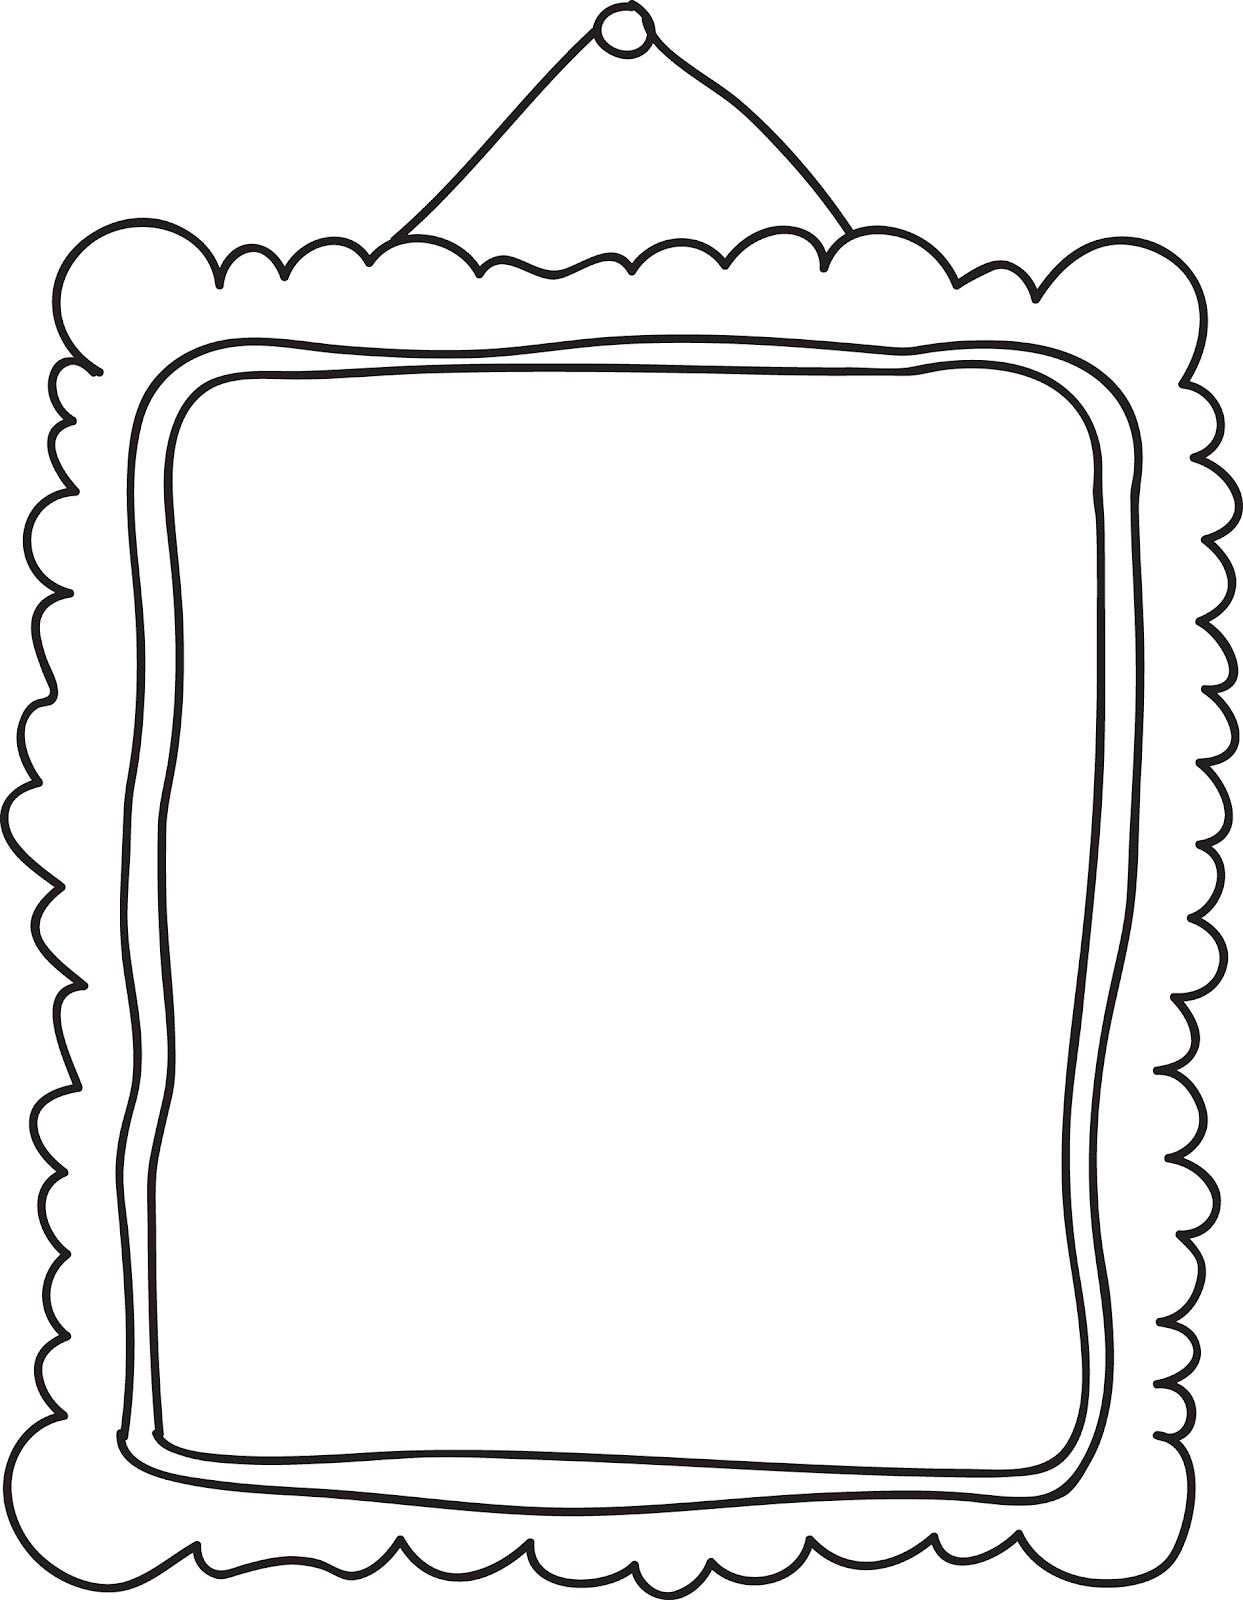 Portrait free download best. Frame clipart black and white